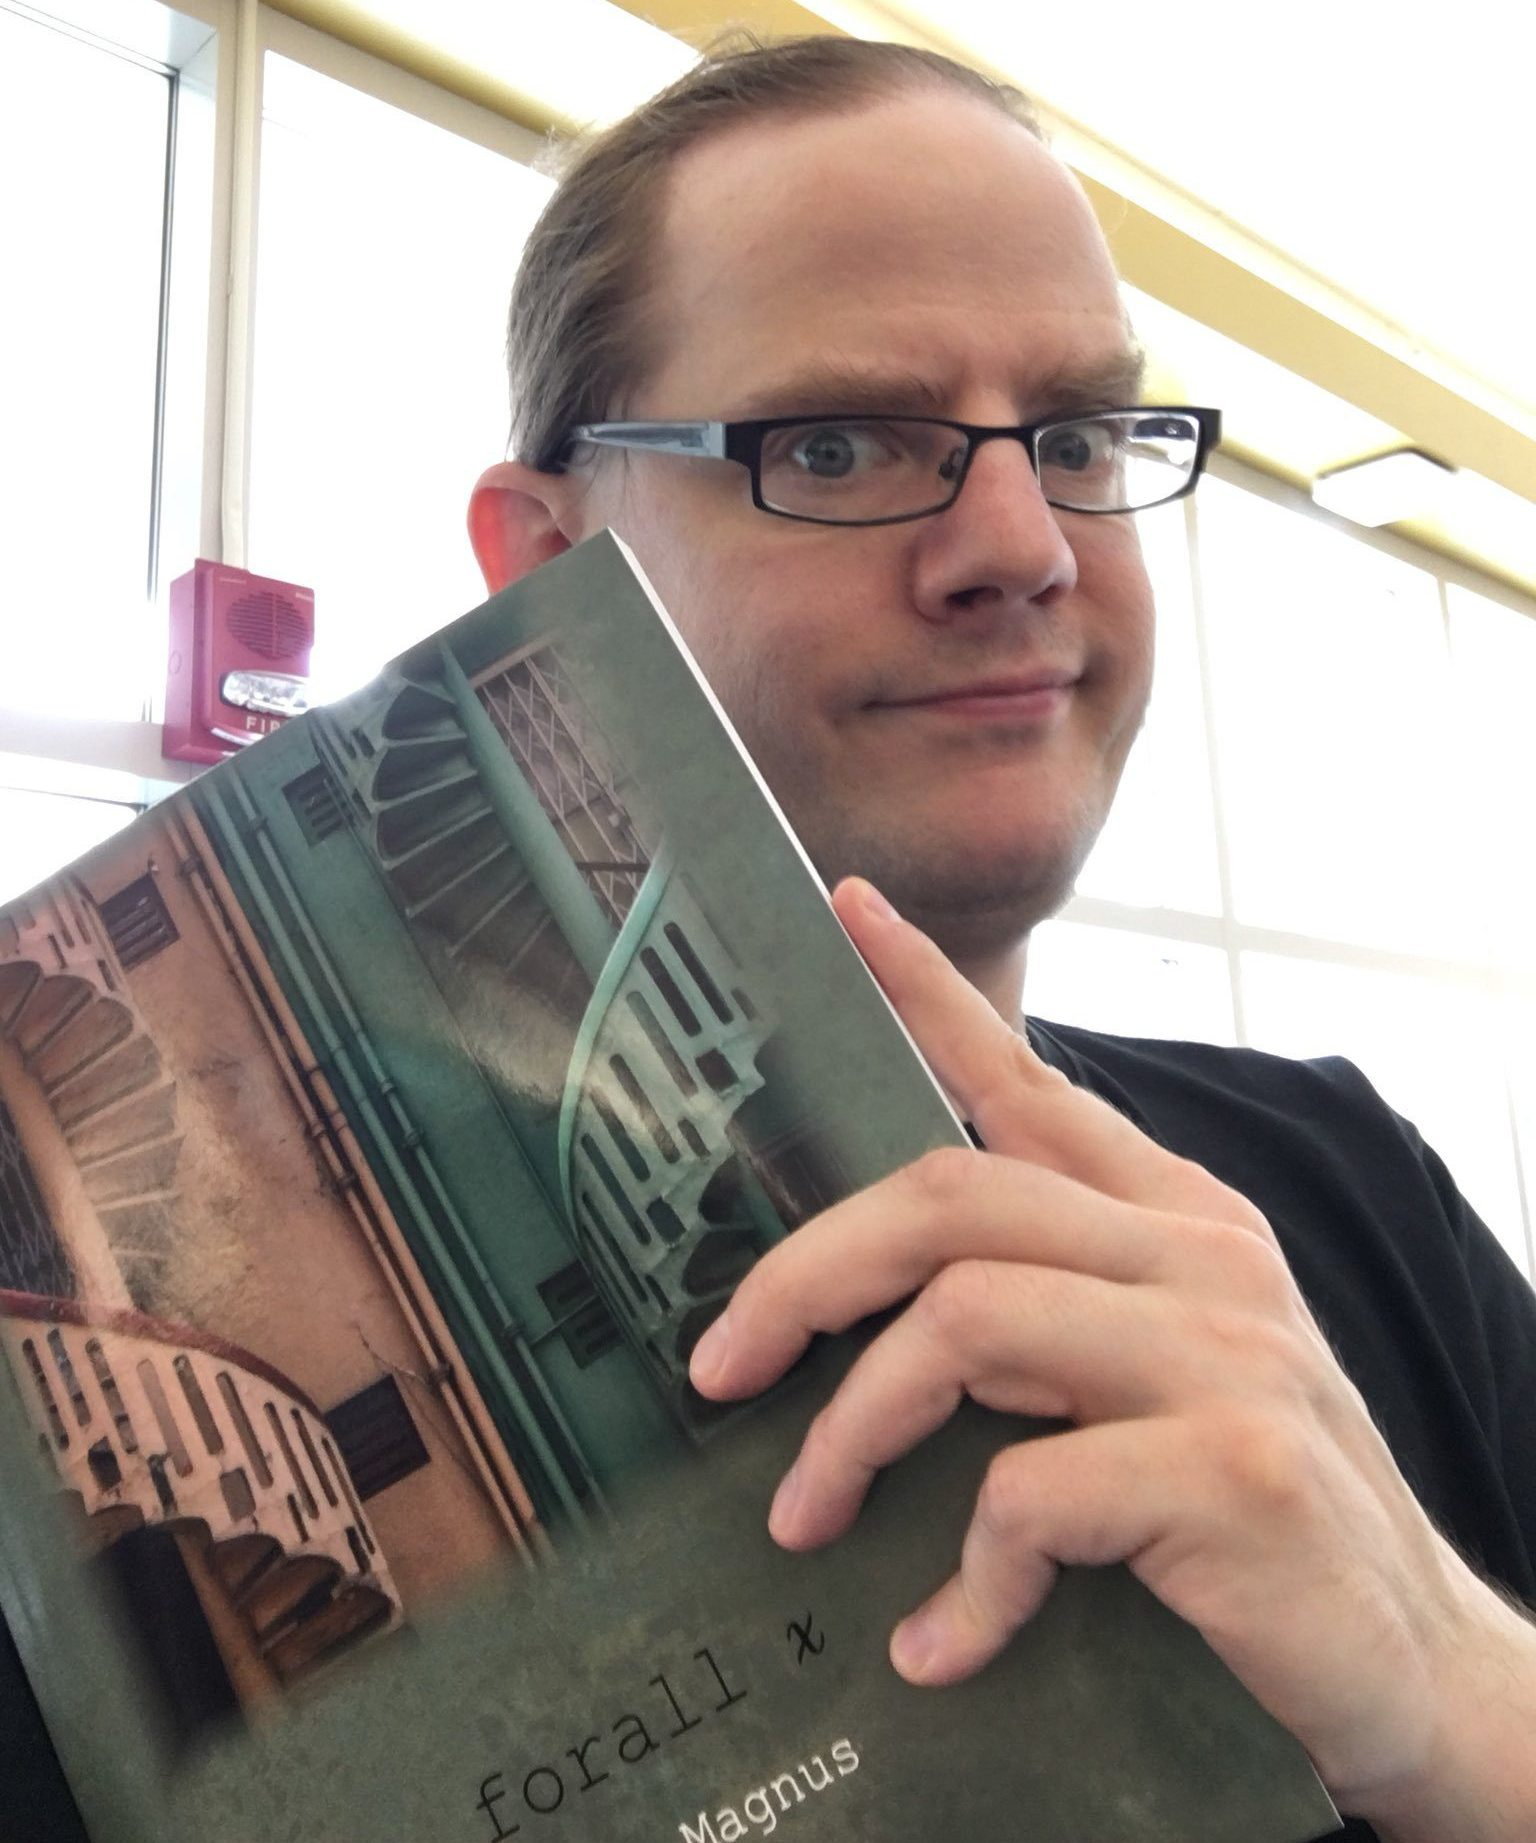 P.D. holds a copy of forall x.